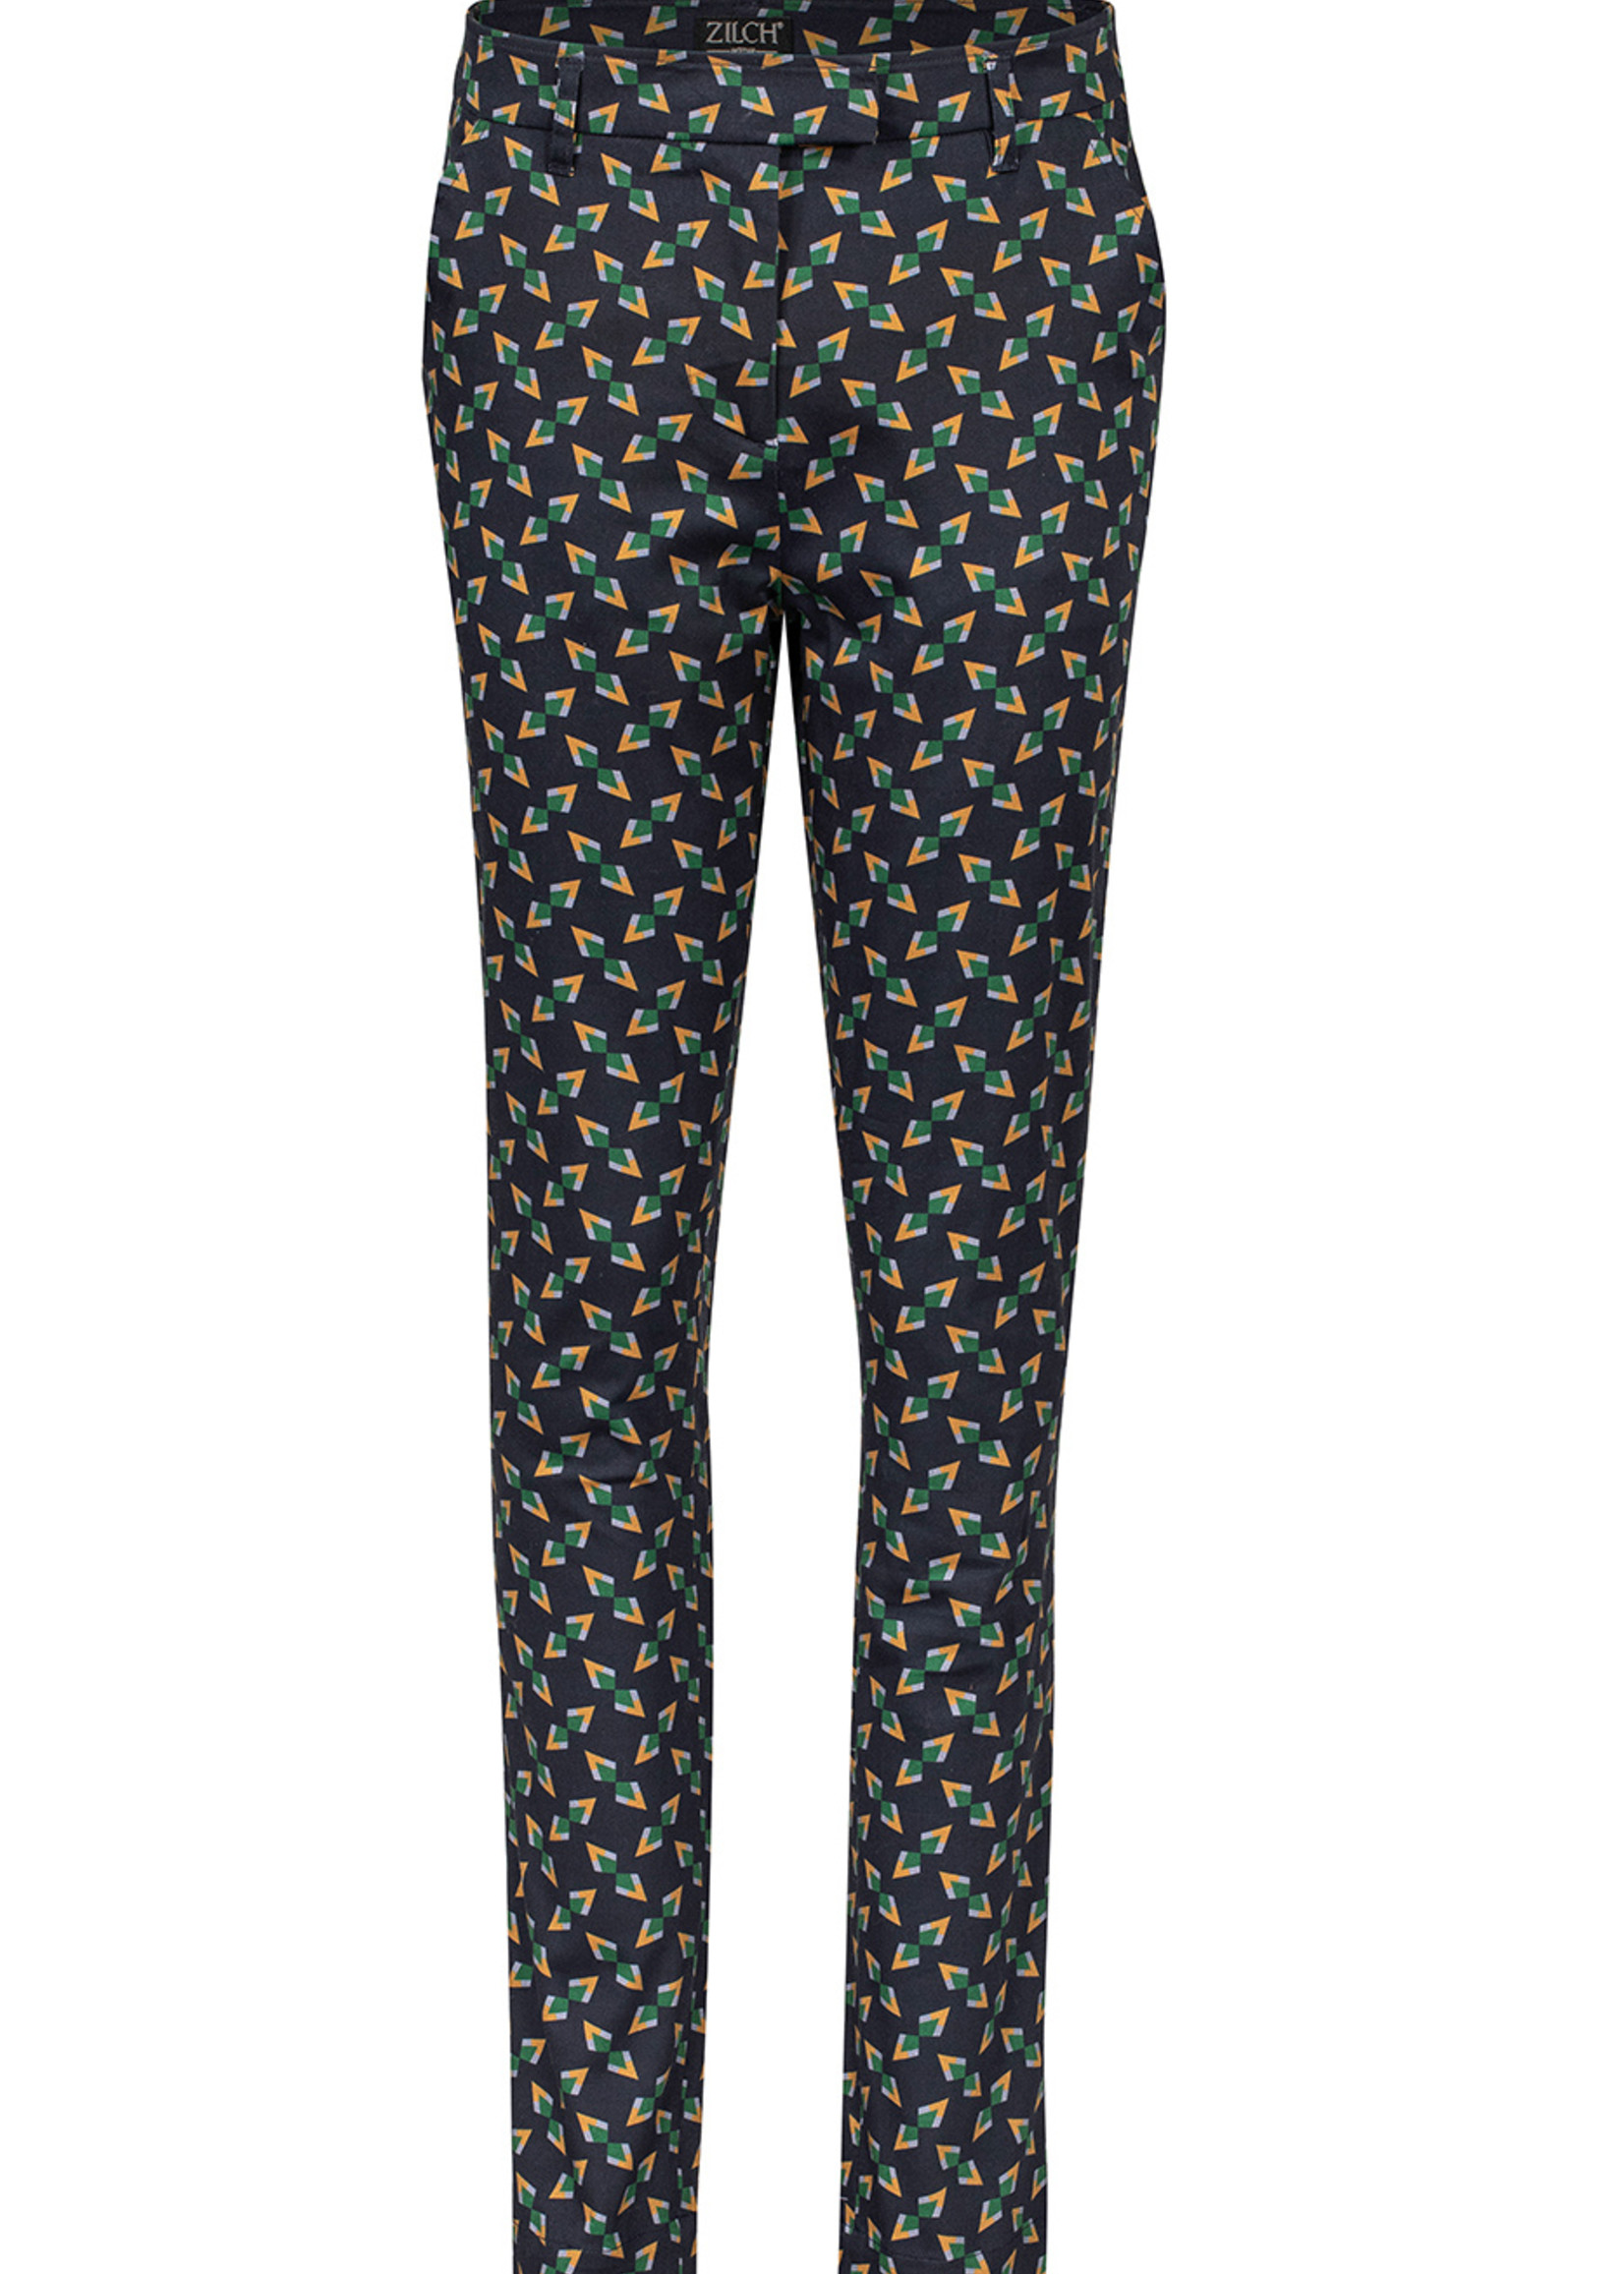 Zilch Zilch Printed Cotton Pants